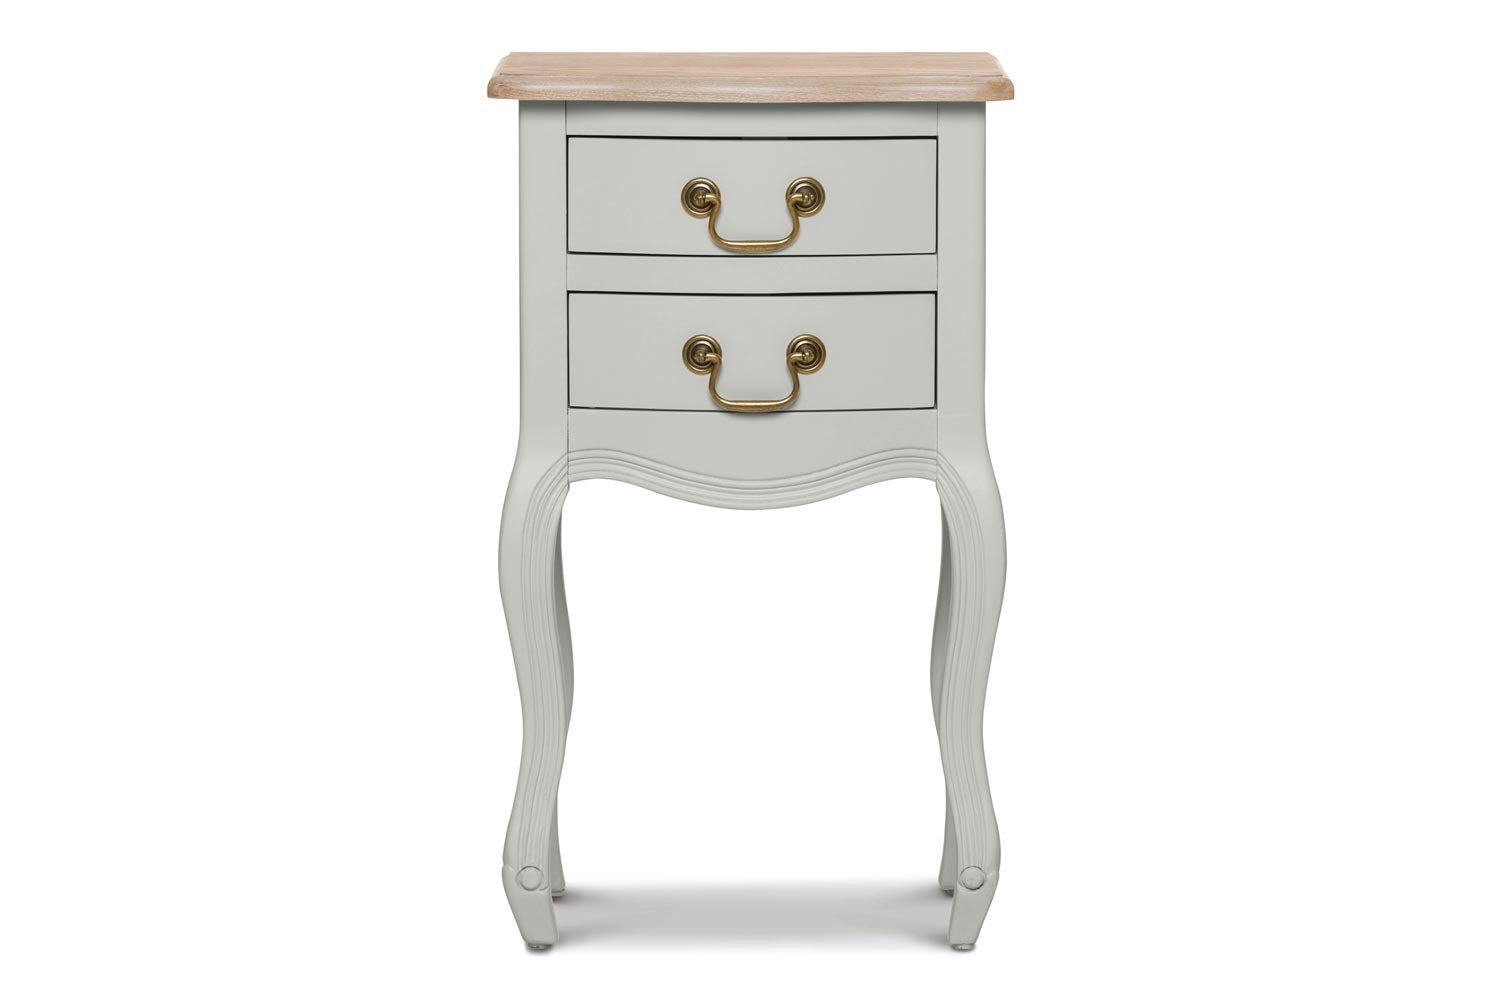 Bouvard 2 Drawer Bedside Locker | Colourtrend